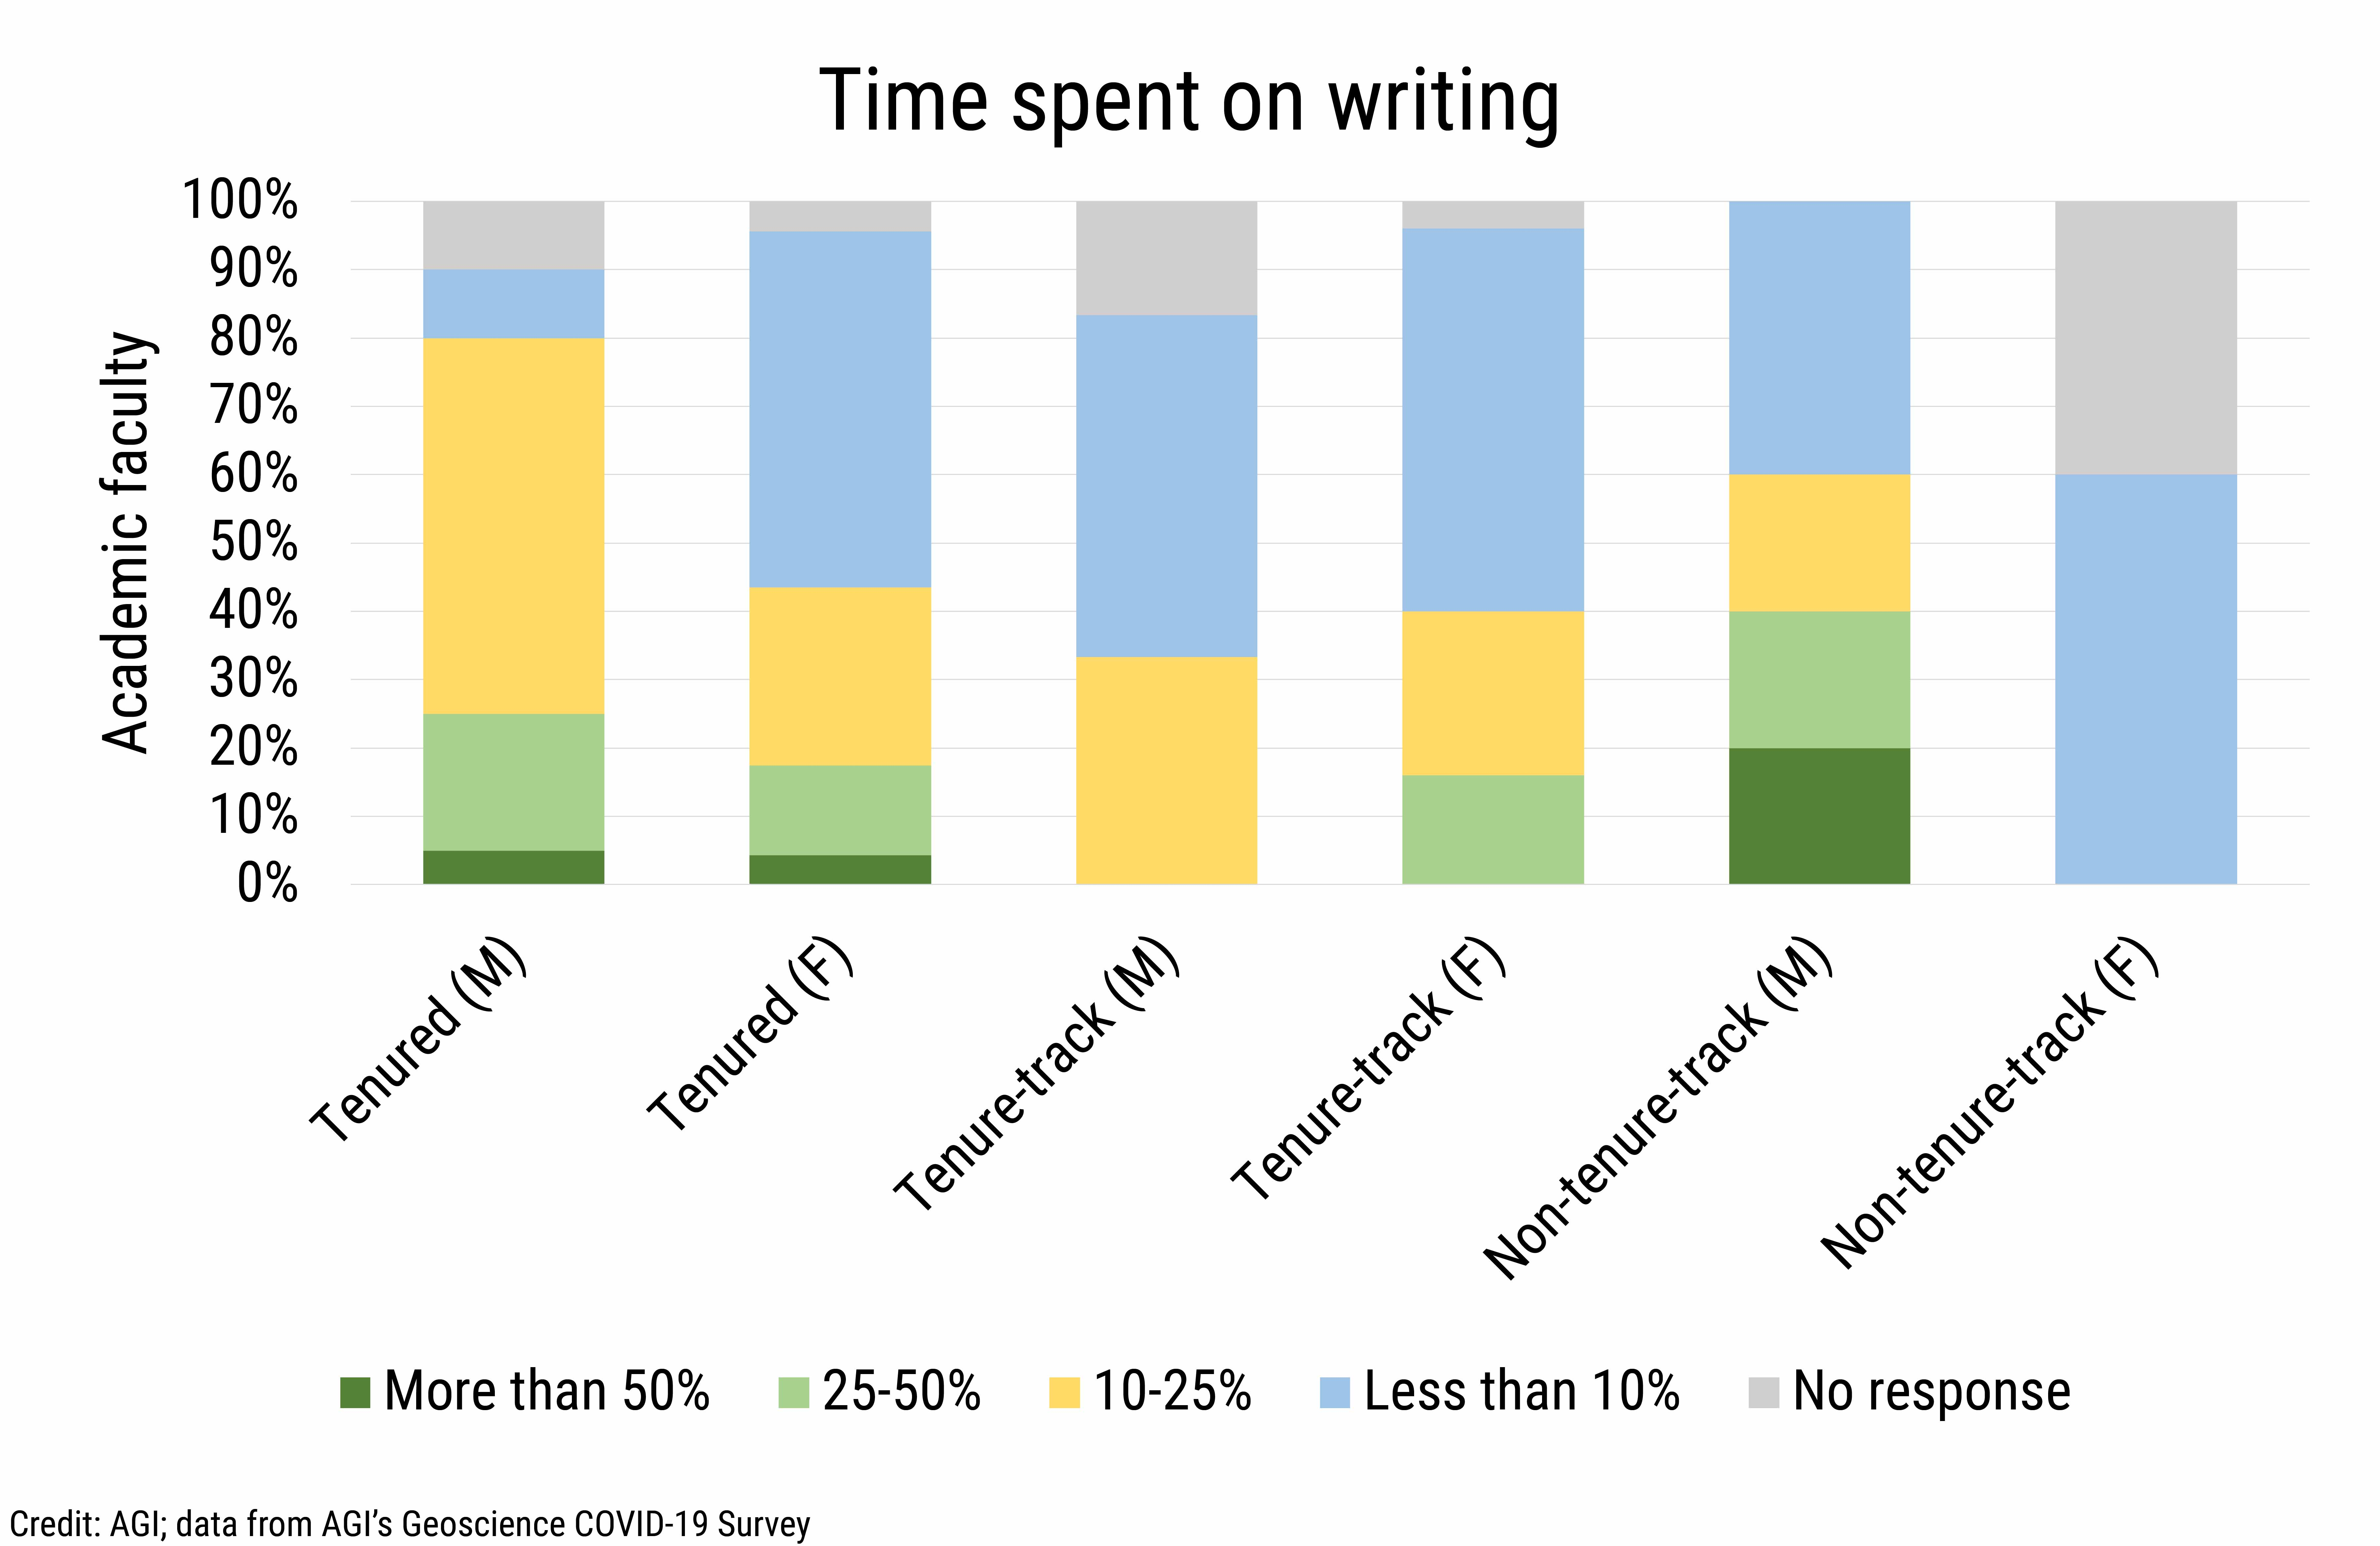 DB_2021-019 chart 02: Time spent on writing (Credit: AGI; data from AGI's Geoscience COVID-19 Survey)